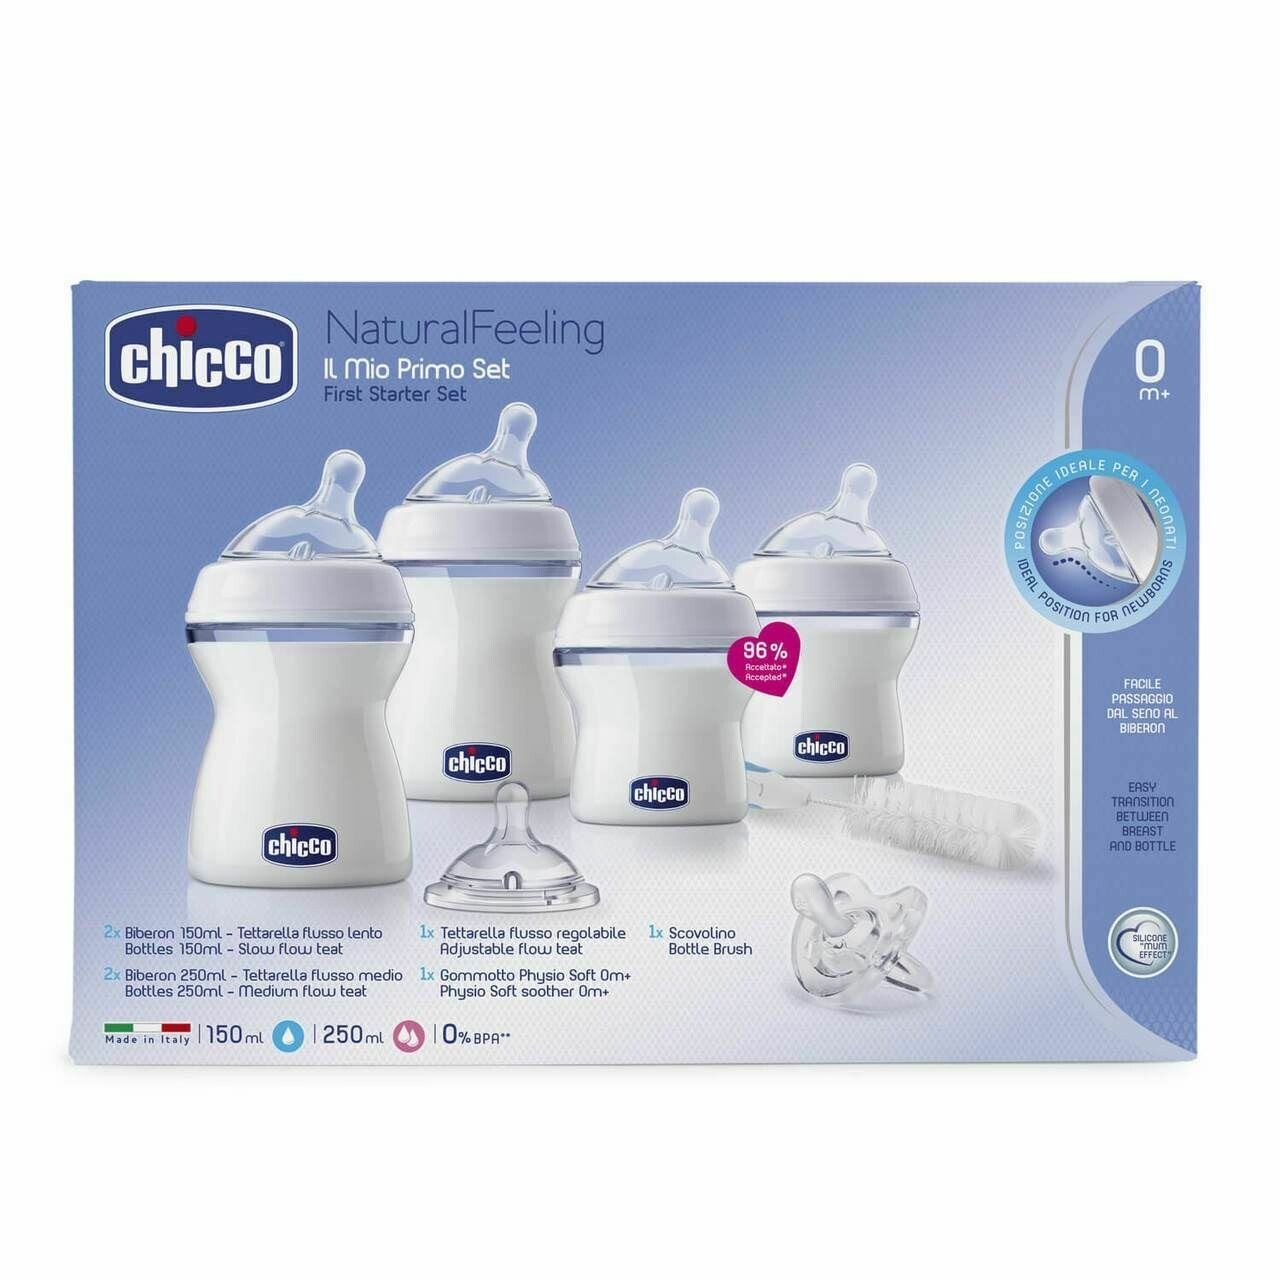 SET COMPLETO INICIO NATURAL FEELING 0M+ CHICCO